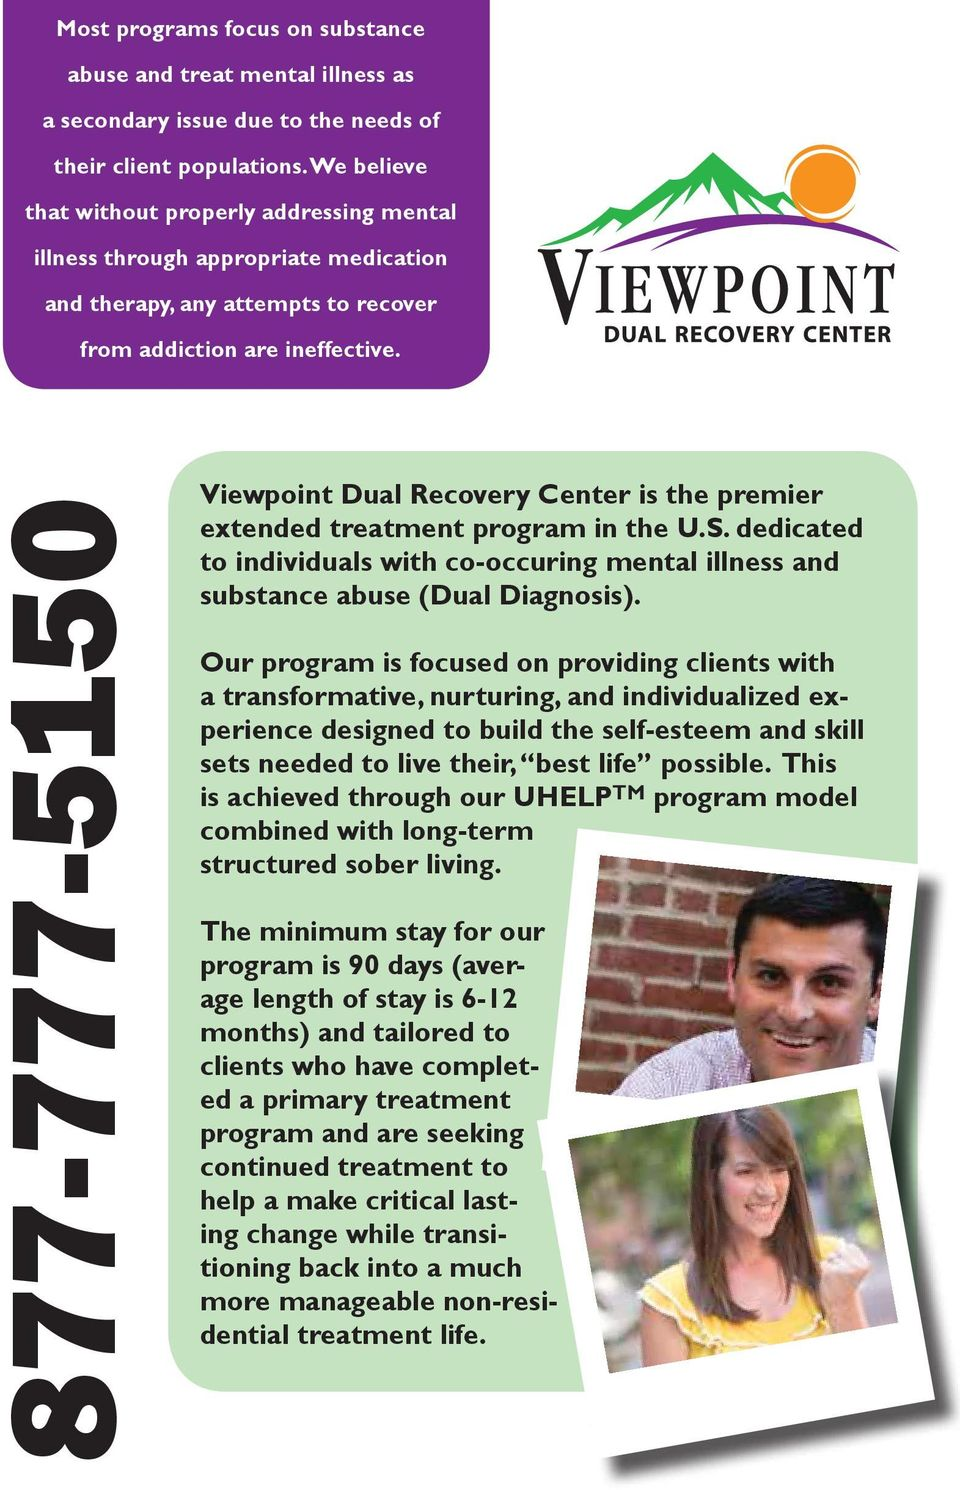 877-777-5150 Viewpoint Dual Recovery Center is the premier extended treatment program in the U.S. dedicated to individuals with co-occuring mental illness and substance abuse (Dual Diagnosis).